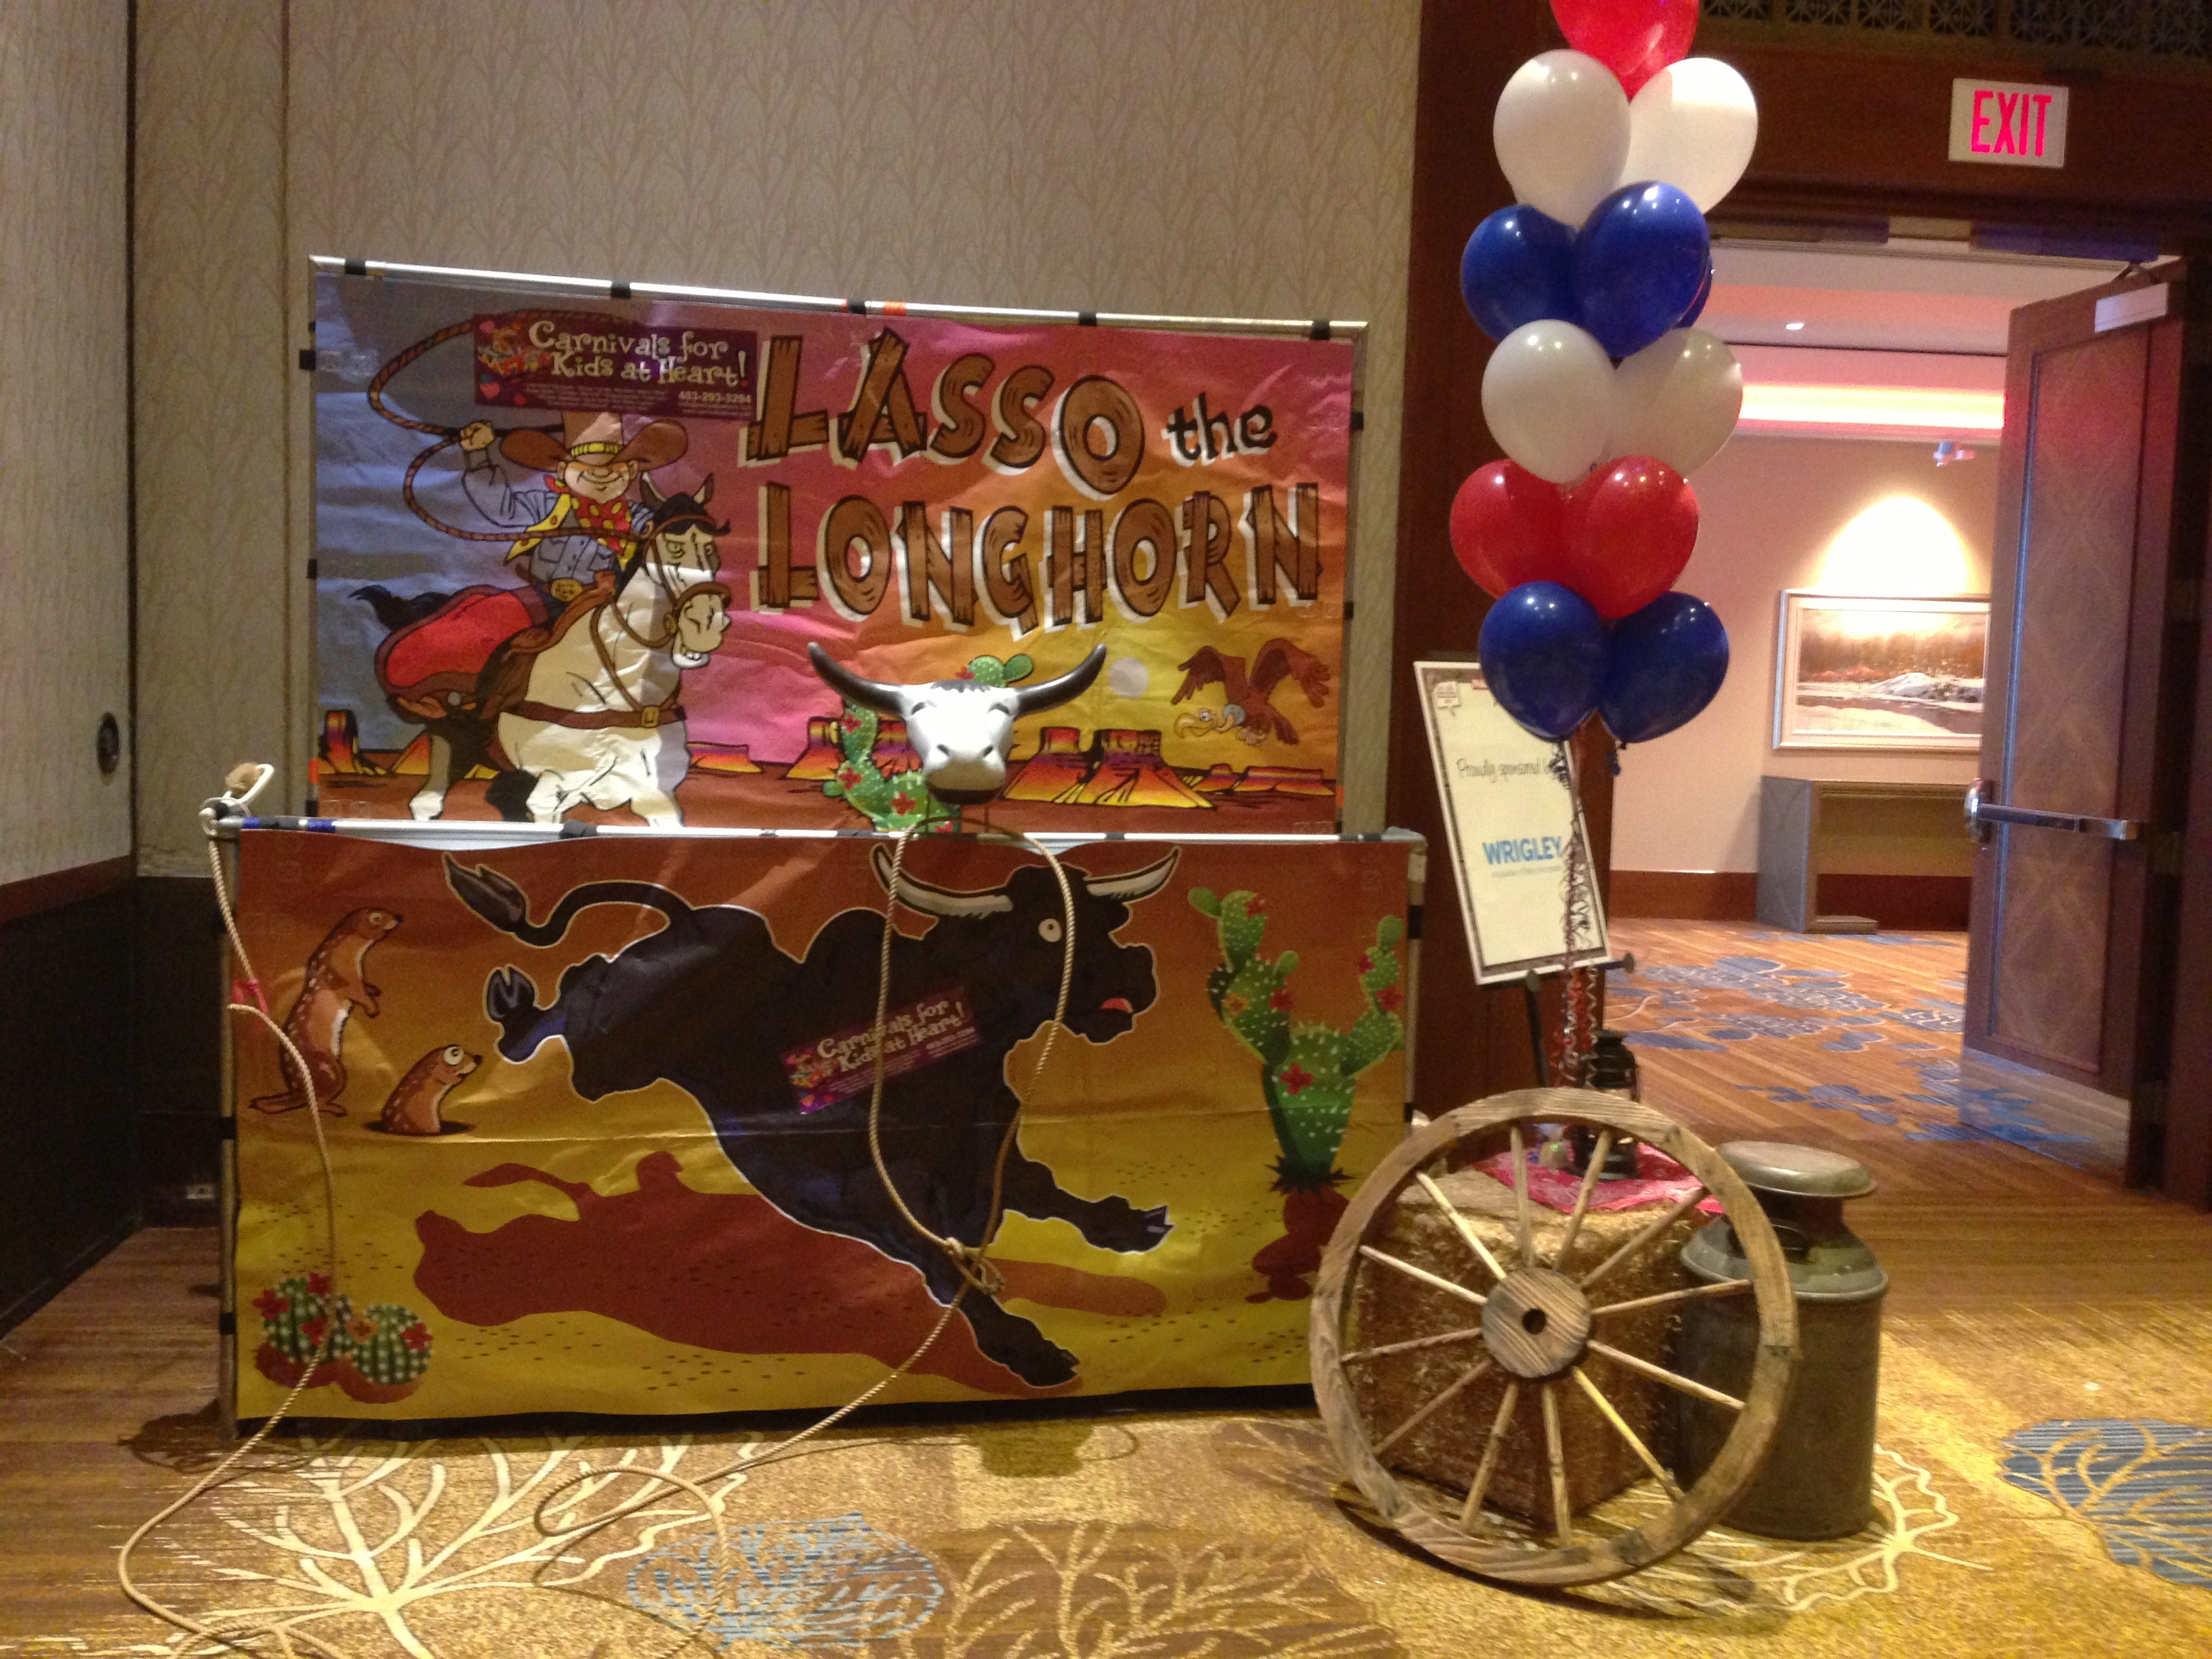 Long Horn Lasso Carnival game